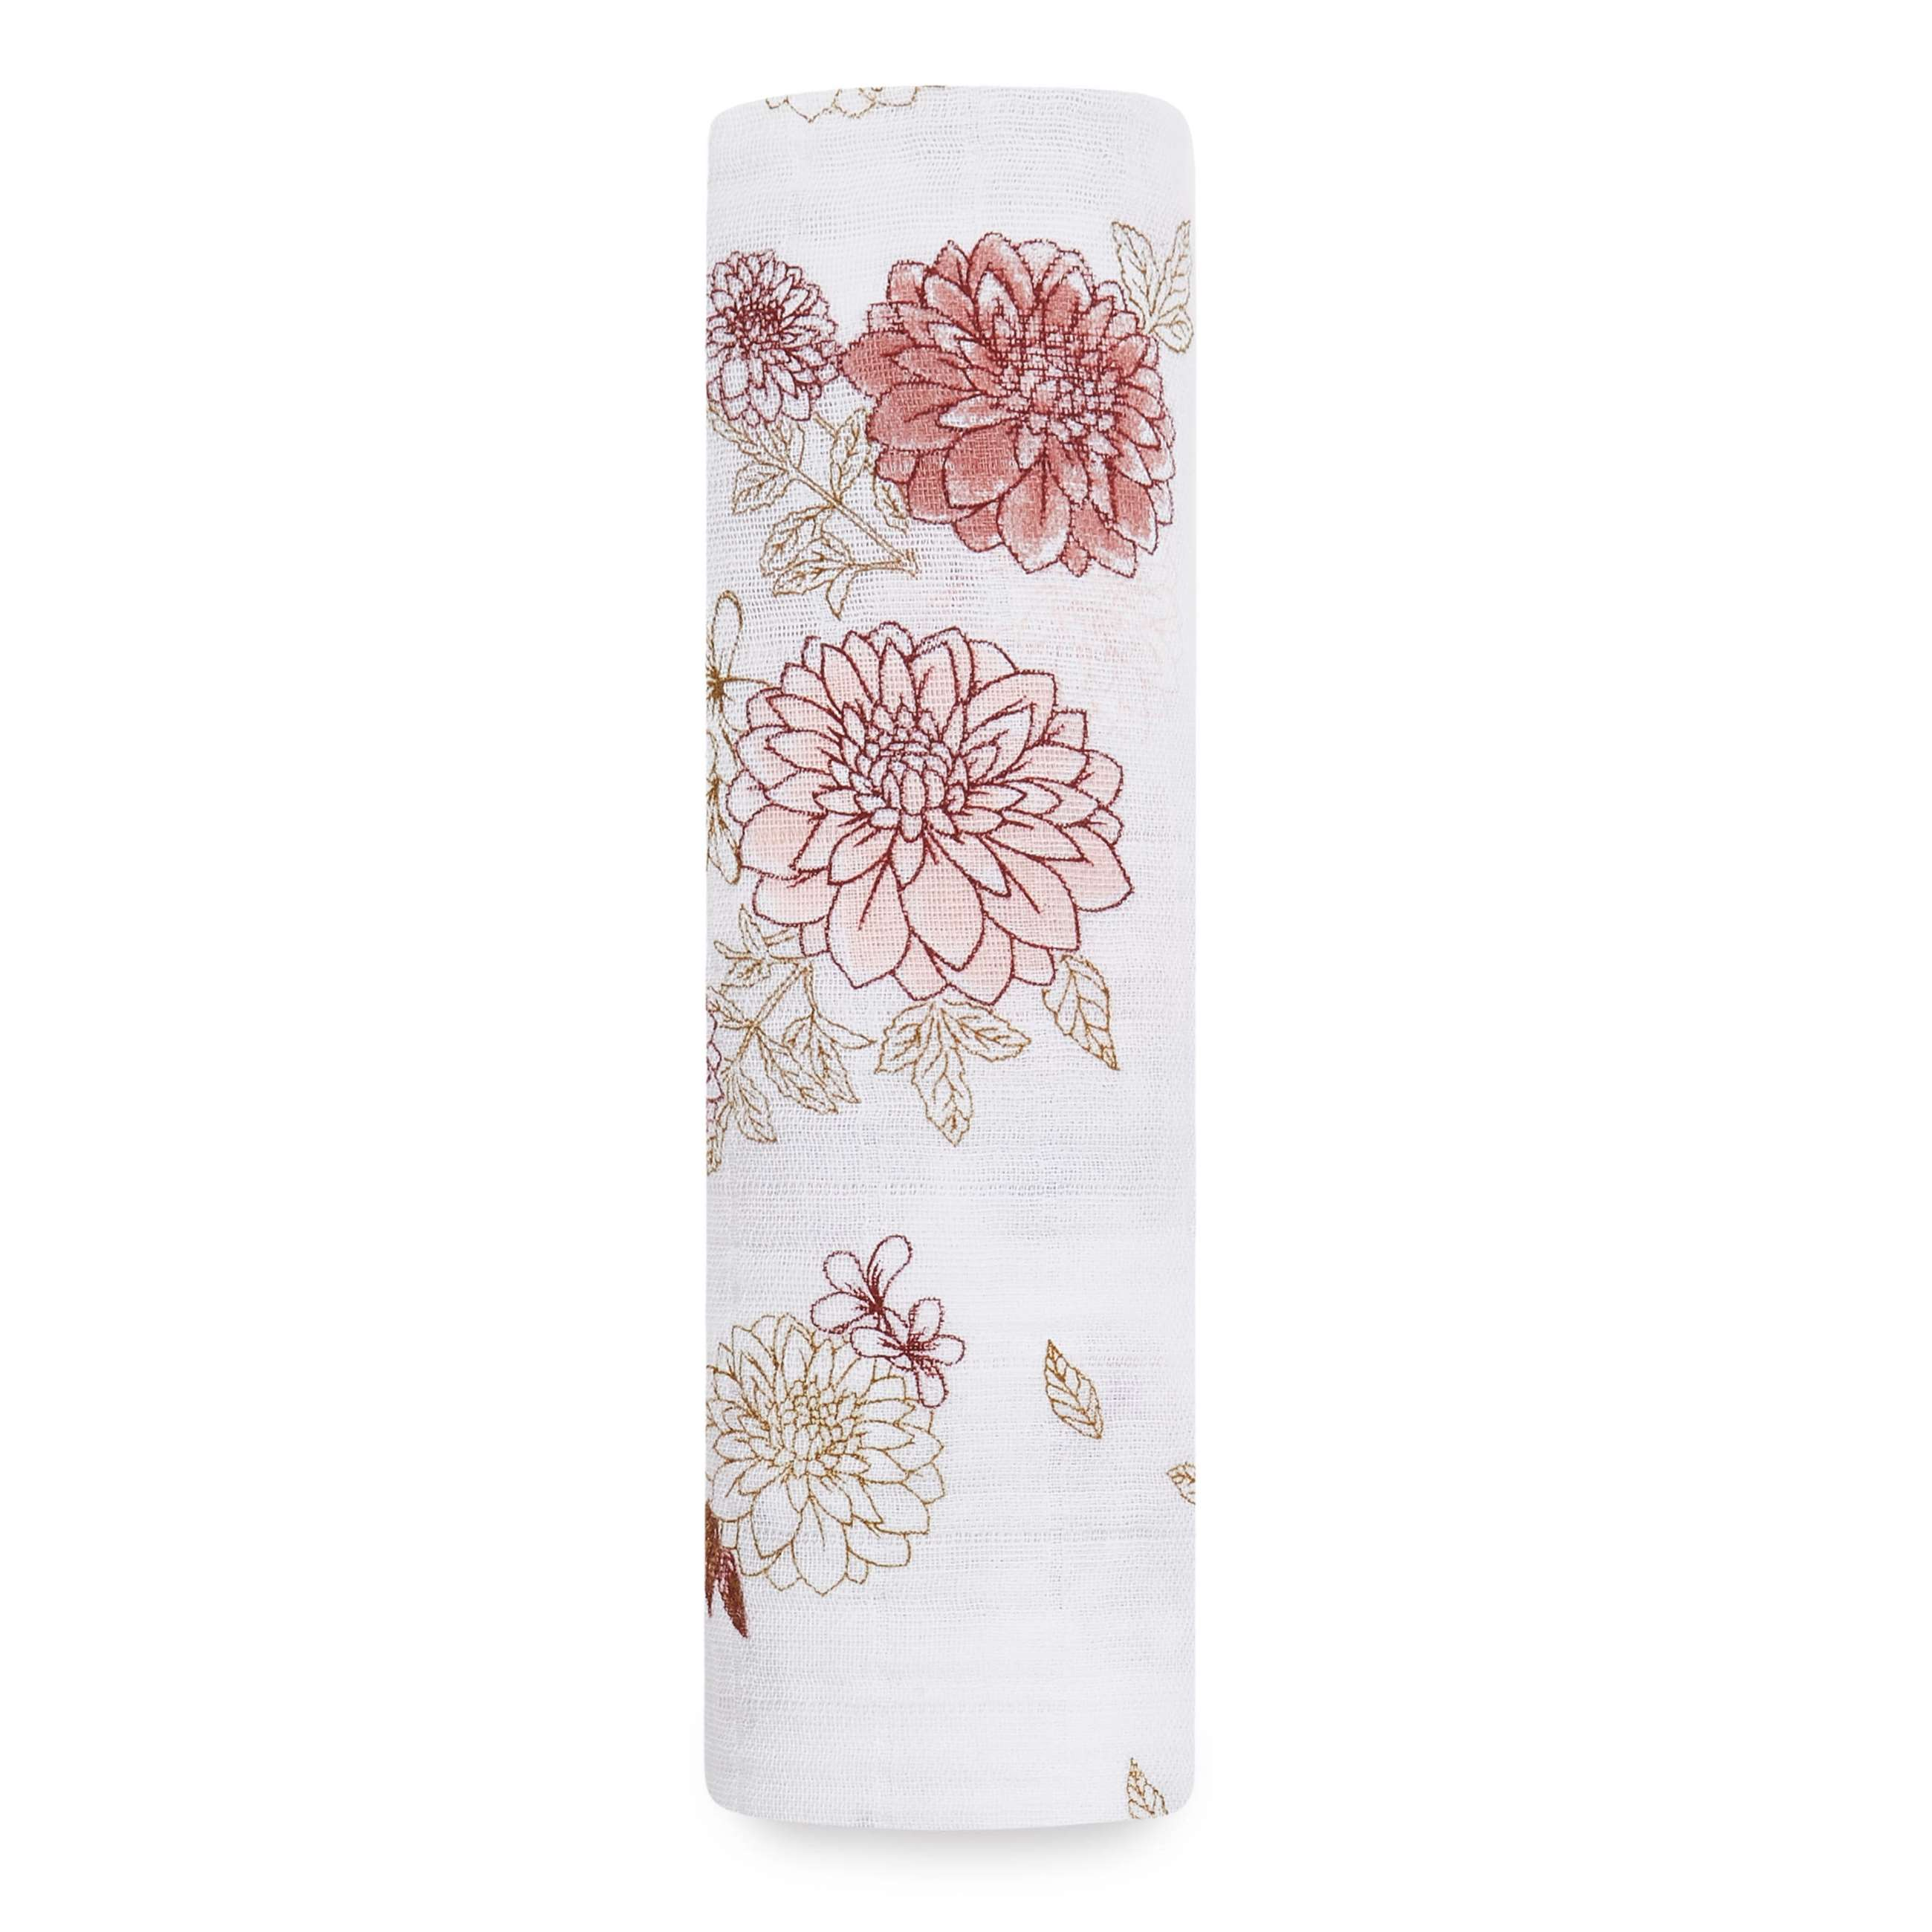 8991_0-classic-swaddle-single-dahlias